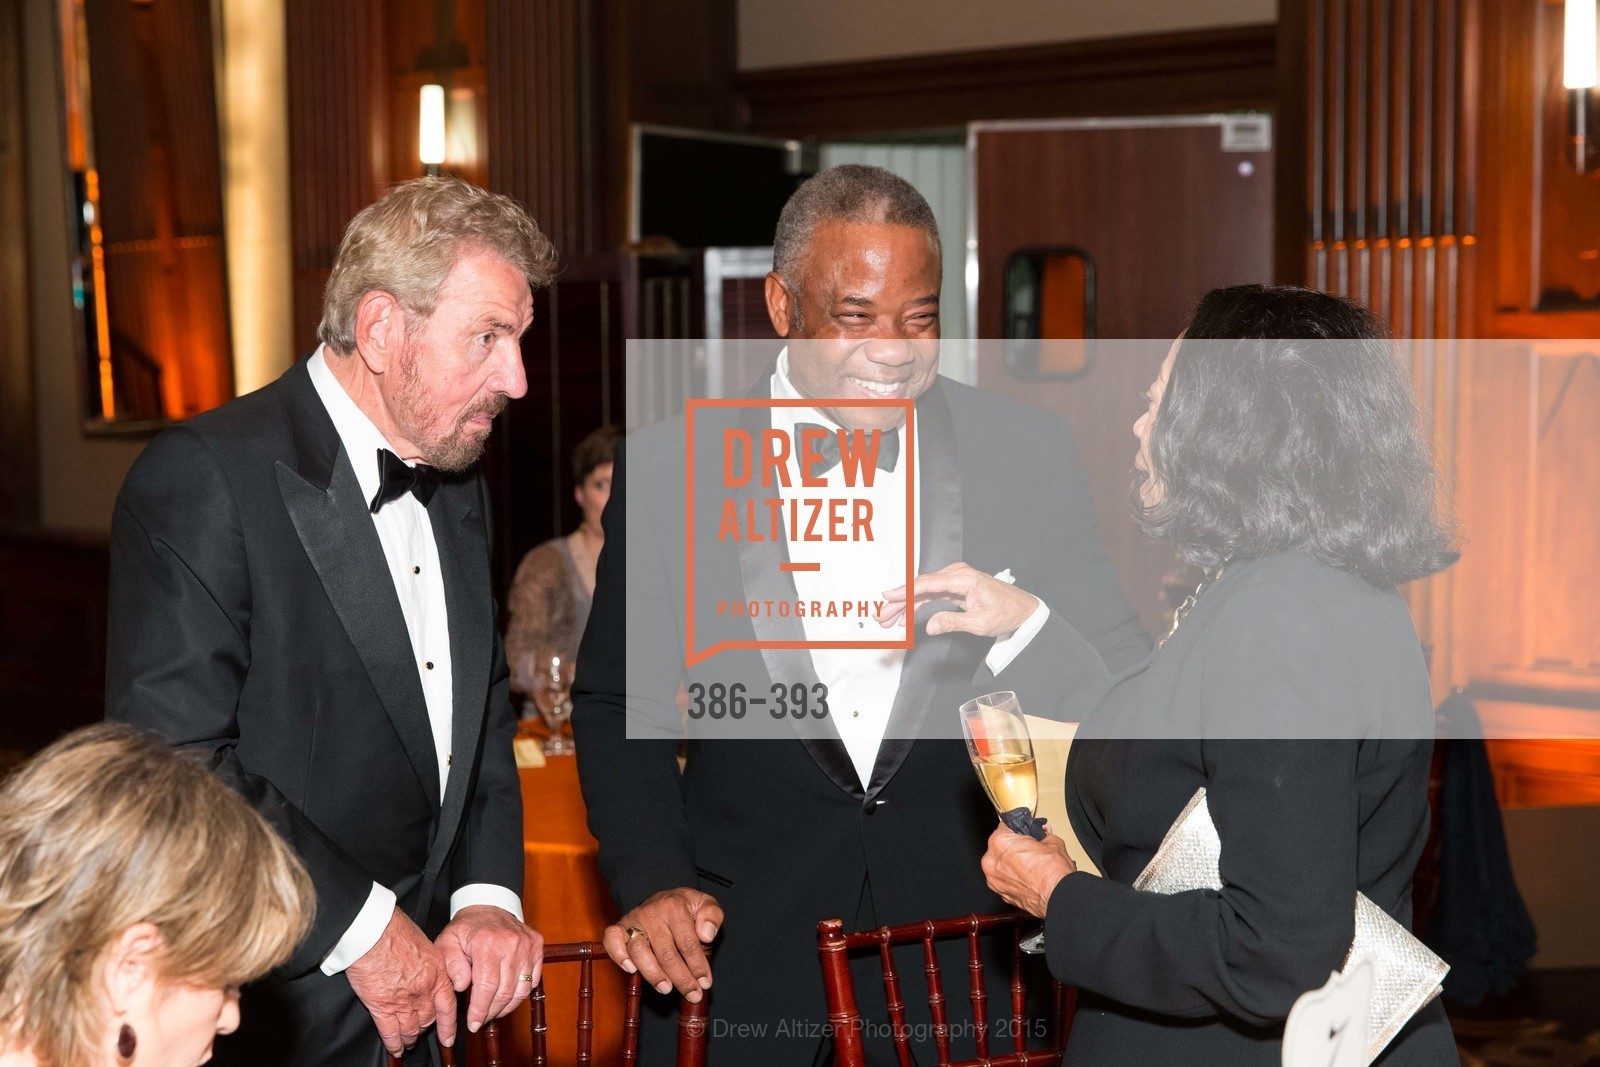 Robert Corrigan, Victor Hymes, San Francisco Performances' 36th Season Gala, Merchants Exchange Building, Julia Morgan Ballroom. 465 California St, San Francisco, CA 94104, October 16th, 2015,Drew Altizer, Drew Altizer Photography, full-service agency, private events, San Francisco photographer, photographer california